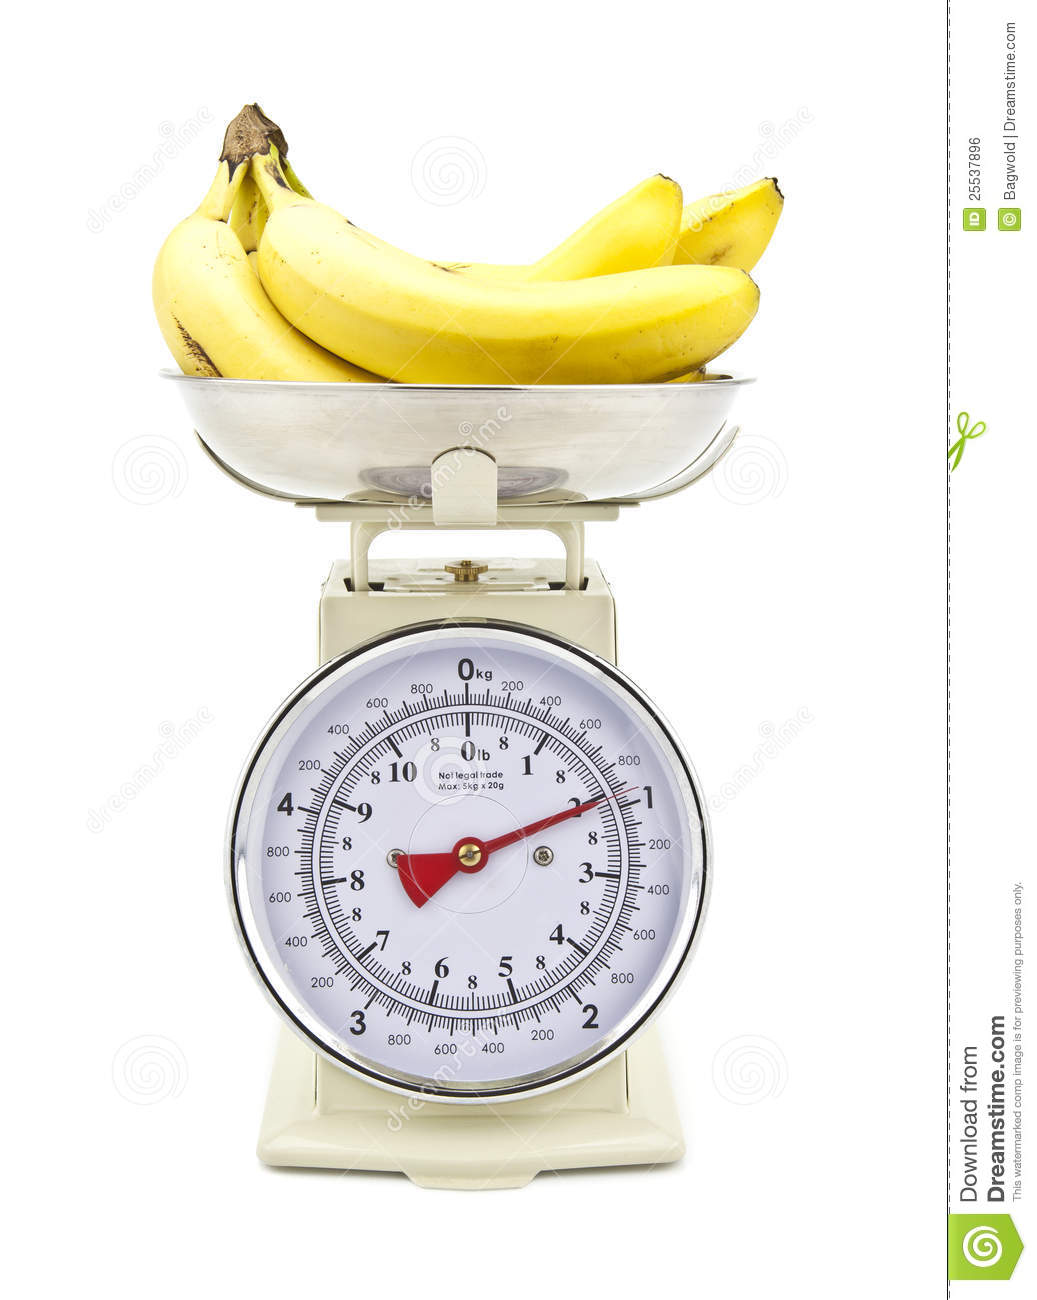 Old Style Kitchen Scales With Bananas Royalty Free Stock